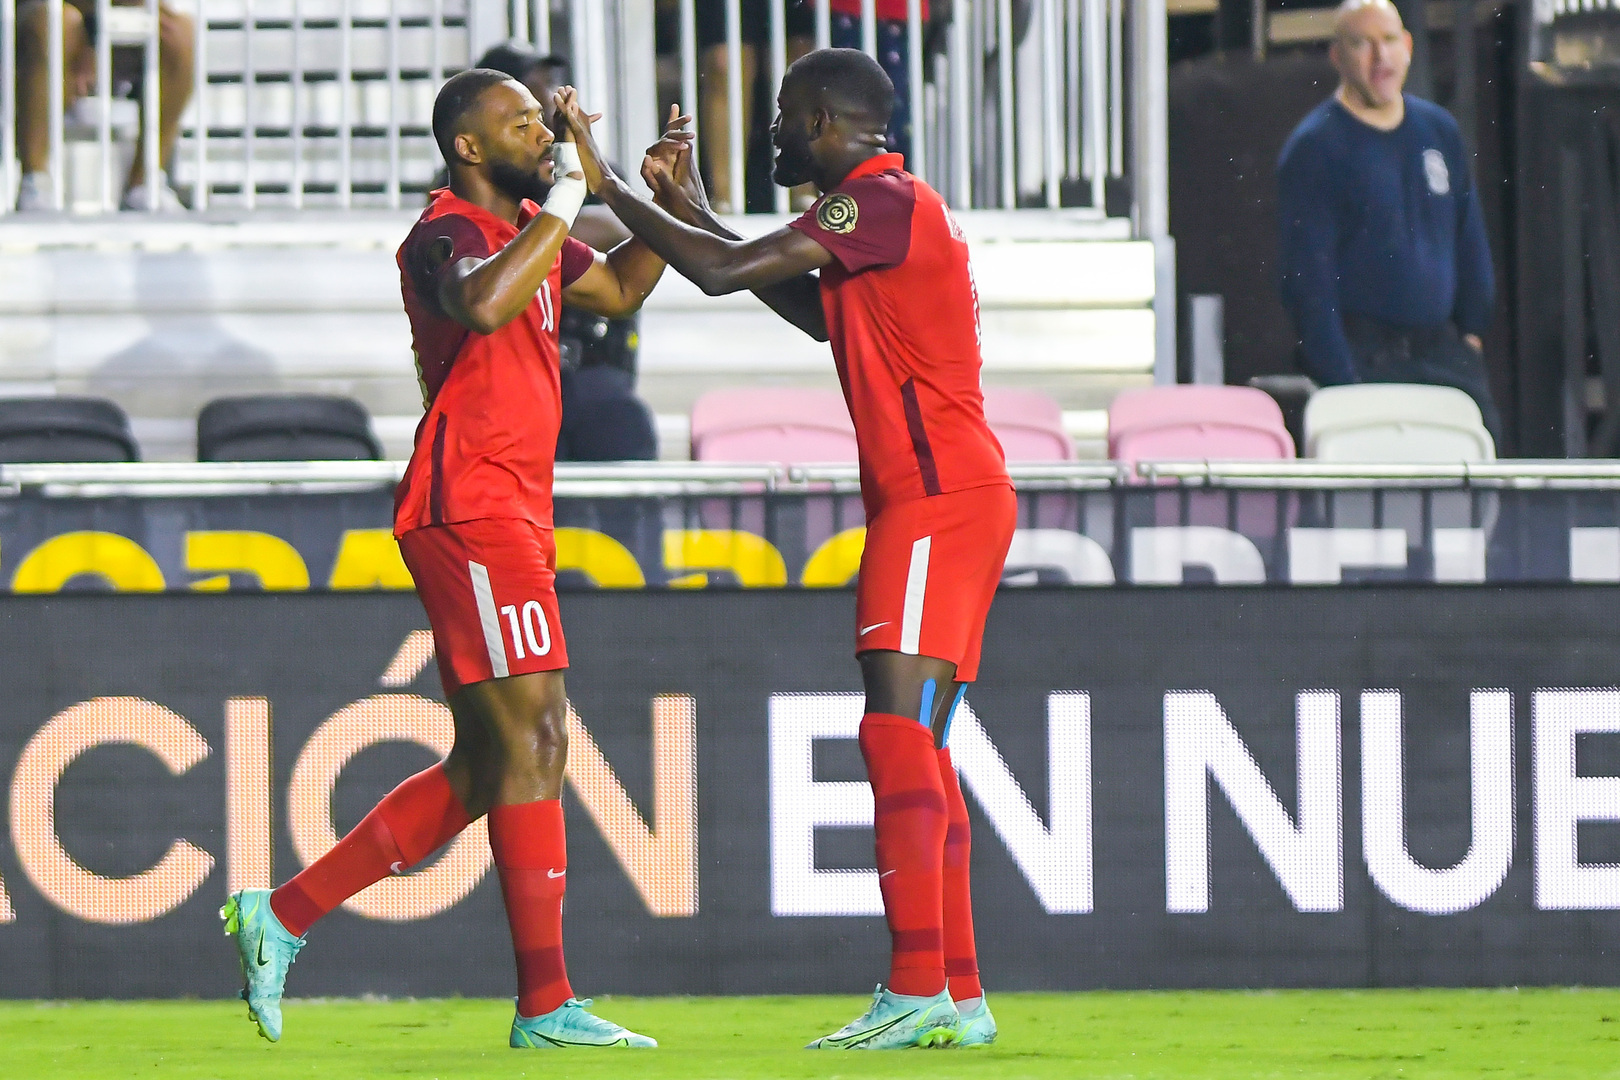 Trinidad and Tobago, Haiti and Guadeloupe complete field of teams for 2021 Concacaf Gold Cup Group Stage